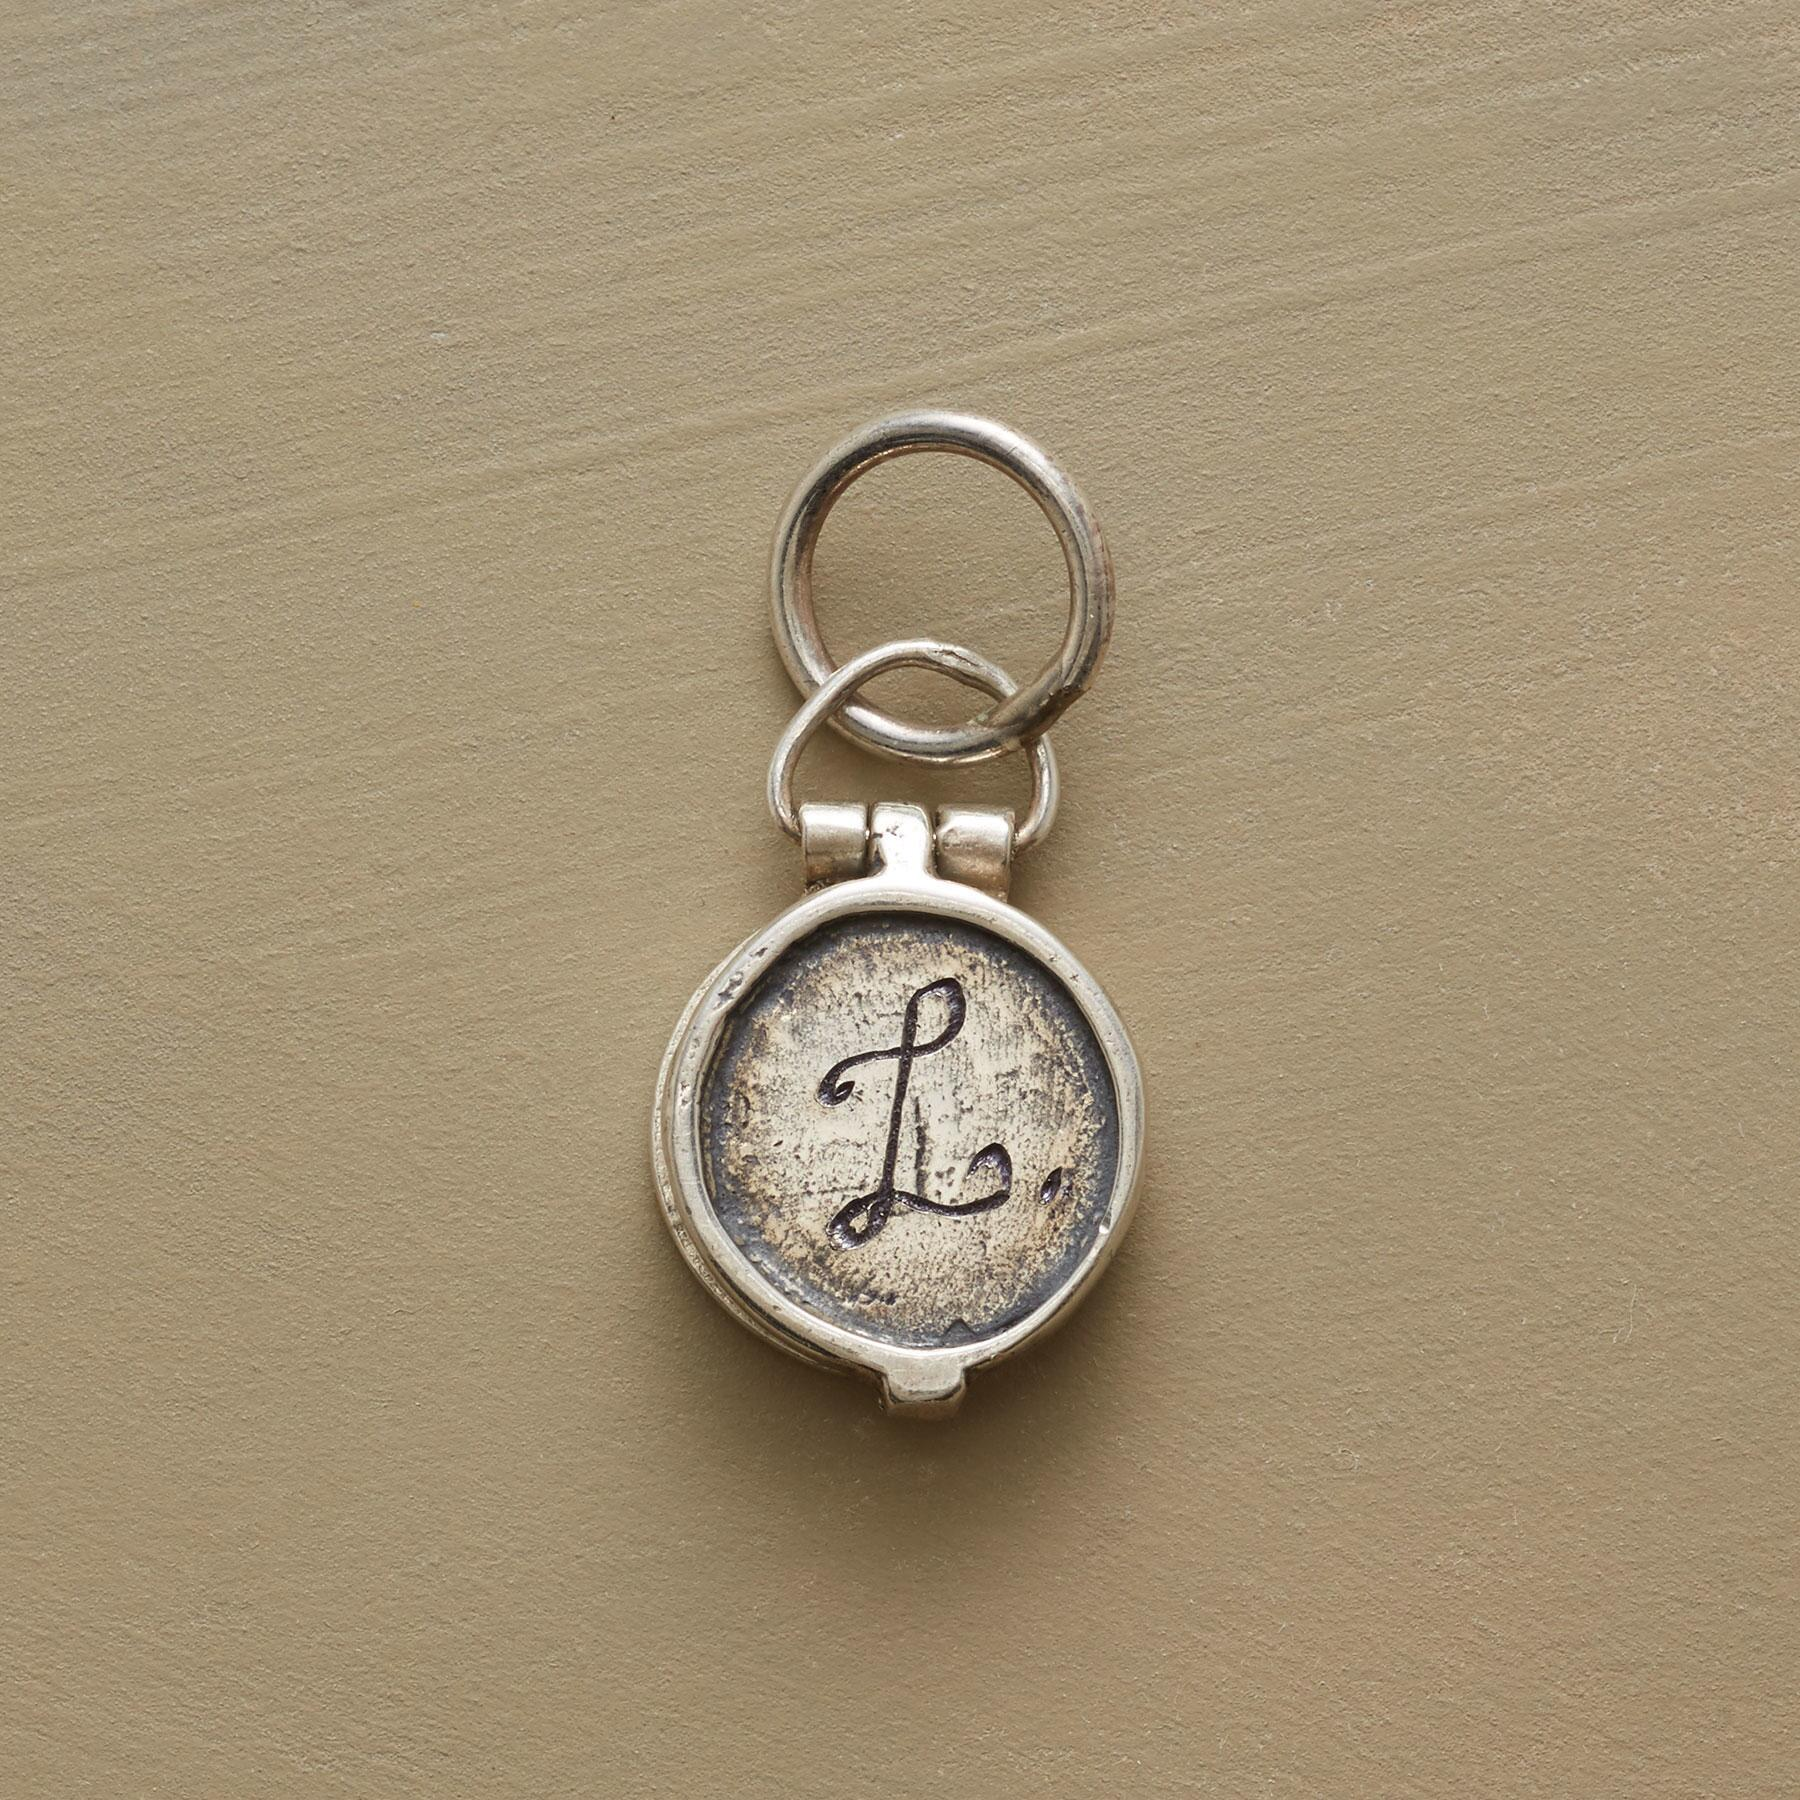 STERLING INITIAL LOCKET CHARM: View 1